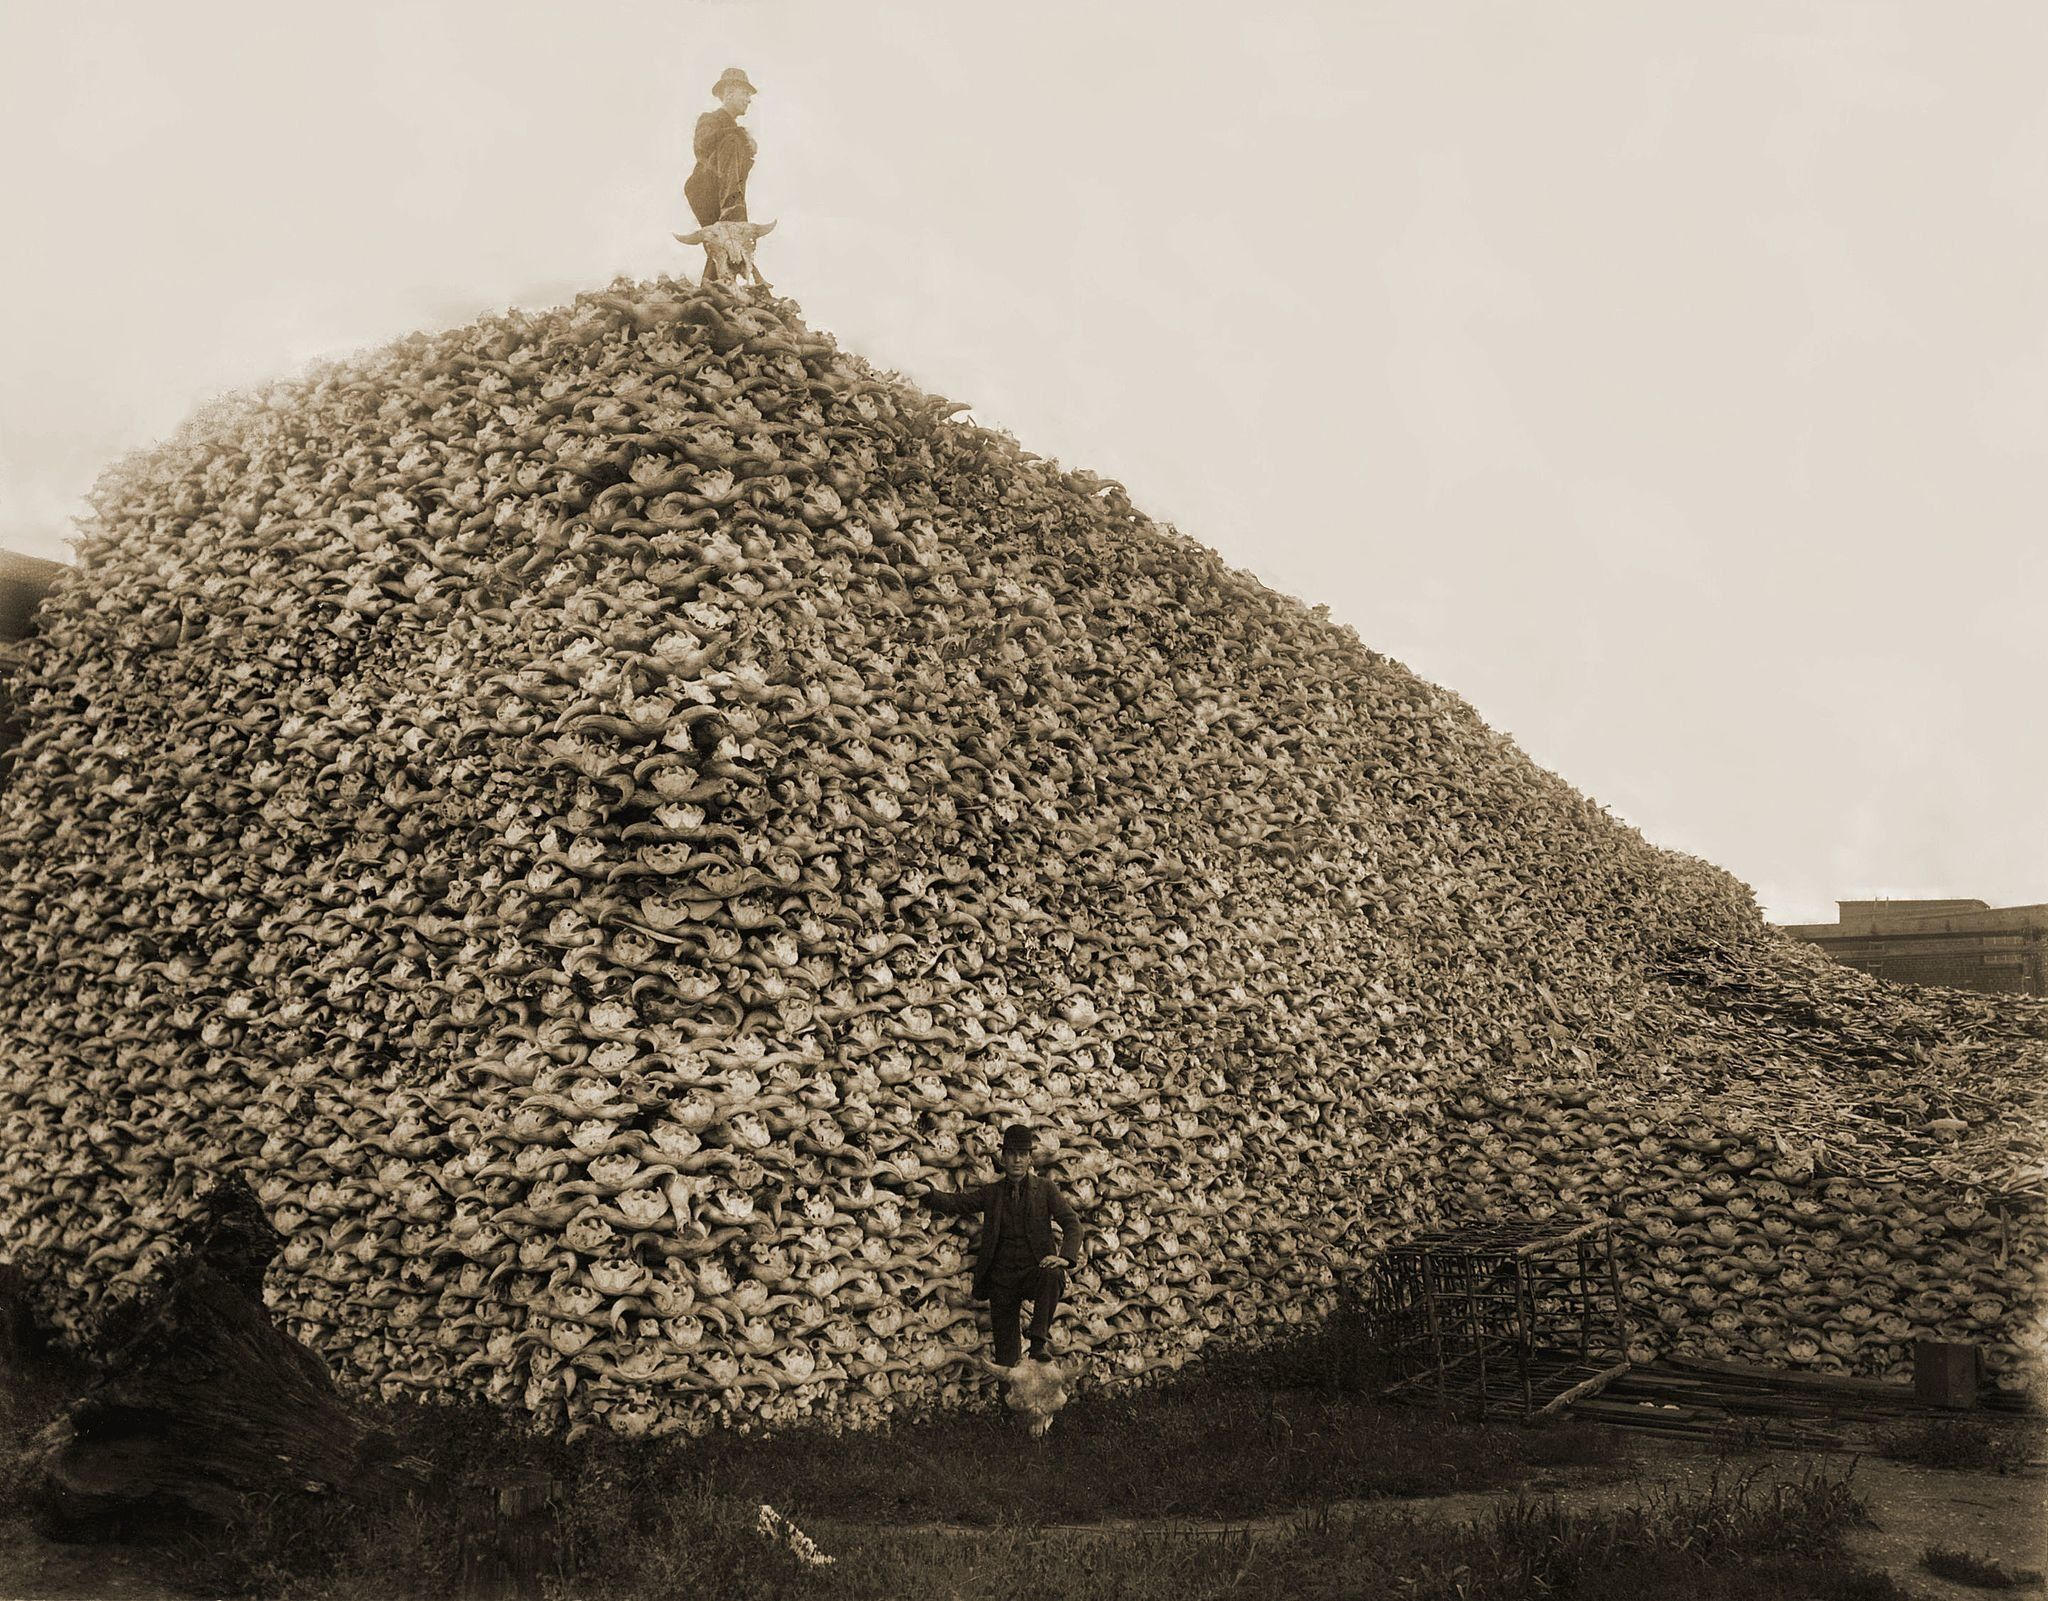 """Amountain of <a href=""""https://en.wikipedia.org/wiki/American_bison"""">American bison</a> skulls waiting to be ground for"""